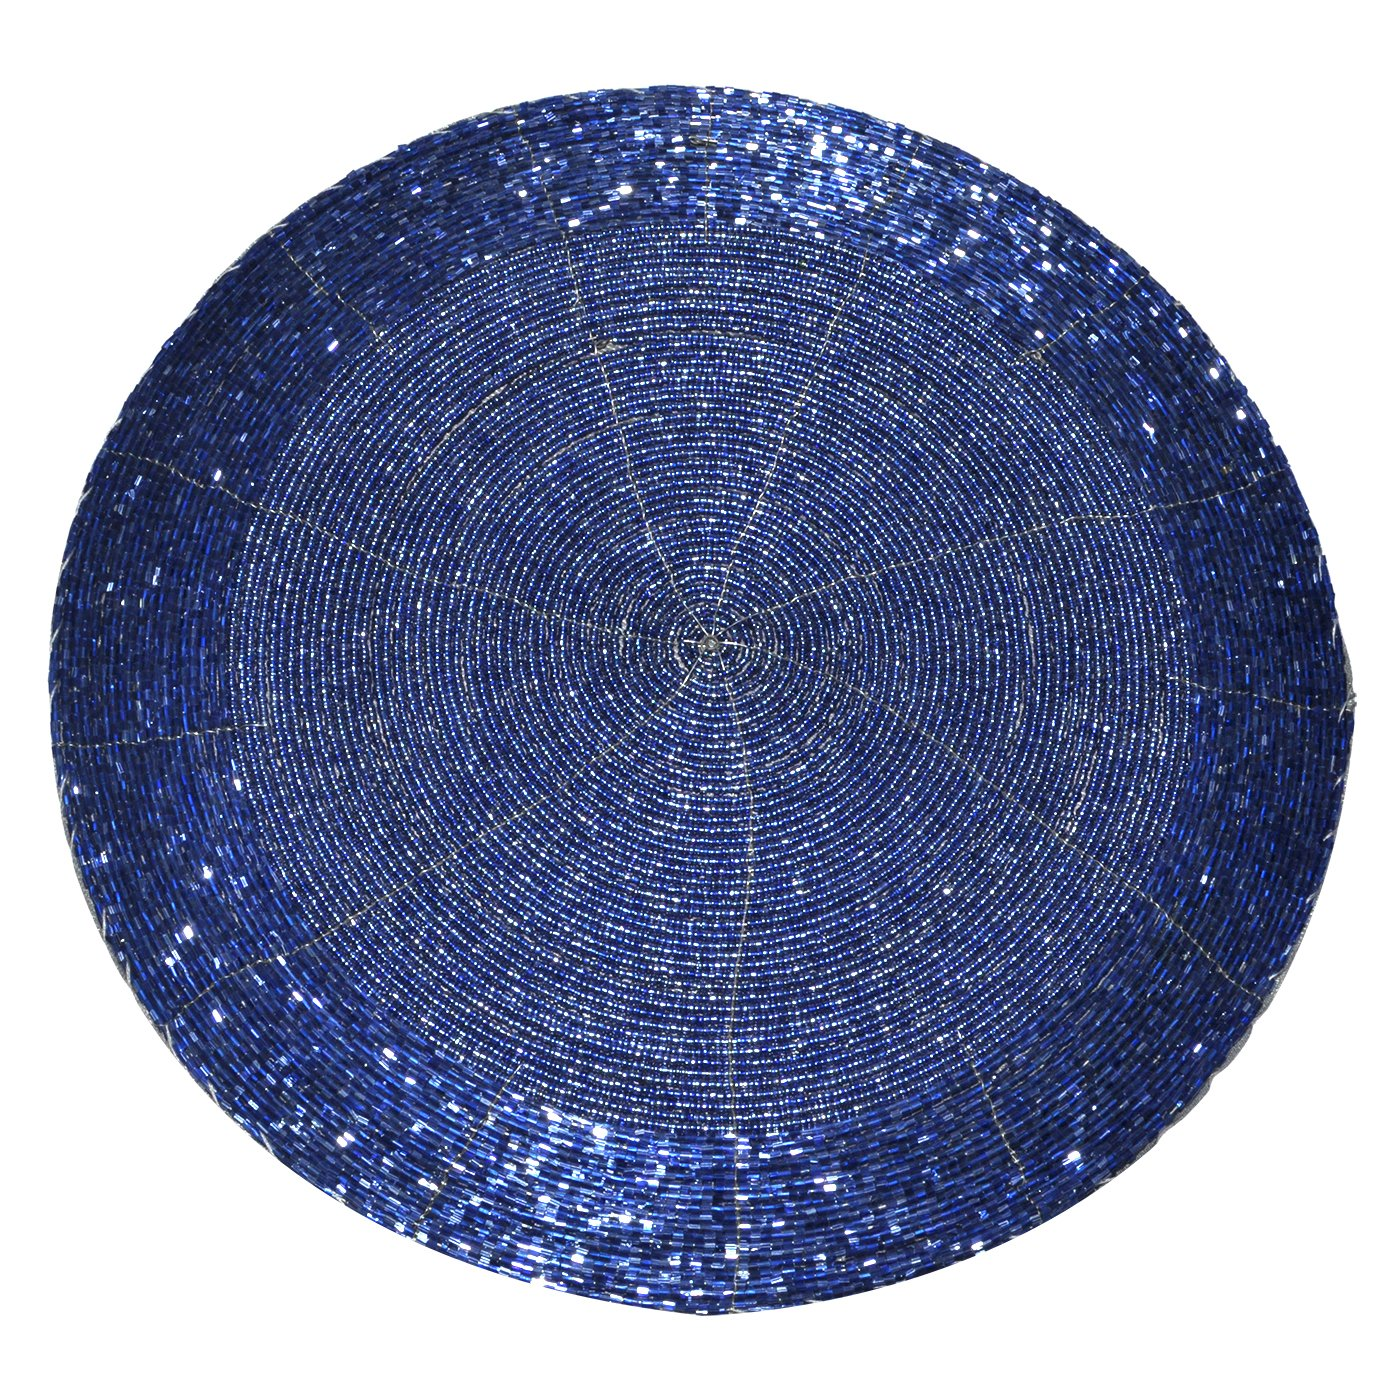 DakshCraft 4 Beaded Round Ethnic Placemat/Tablemat(Dia - 12'') with 4 tea cup coaster(Dia - 4'') and 4 napkin ring(Dia -1.5'') for Christmas Gift, Decorative Item, Gifts Purpose, dining accessories by DakshCraft (Image #3)